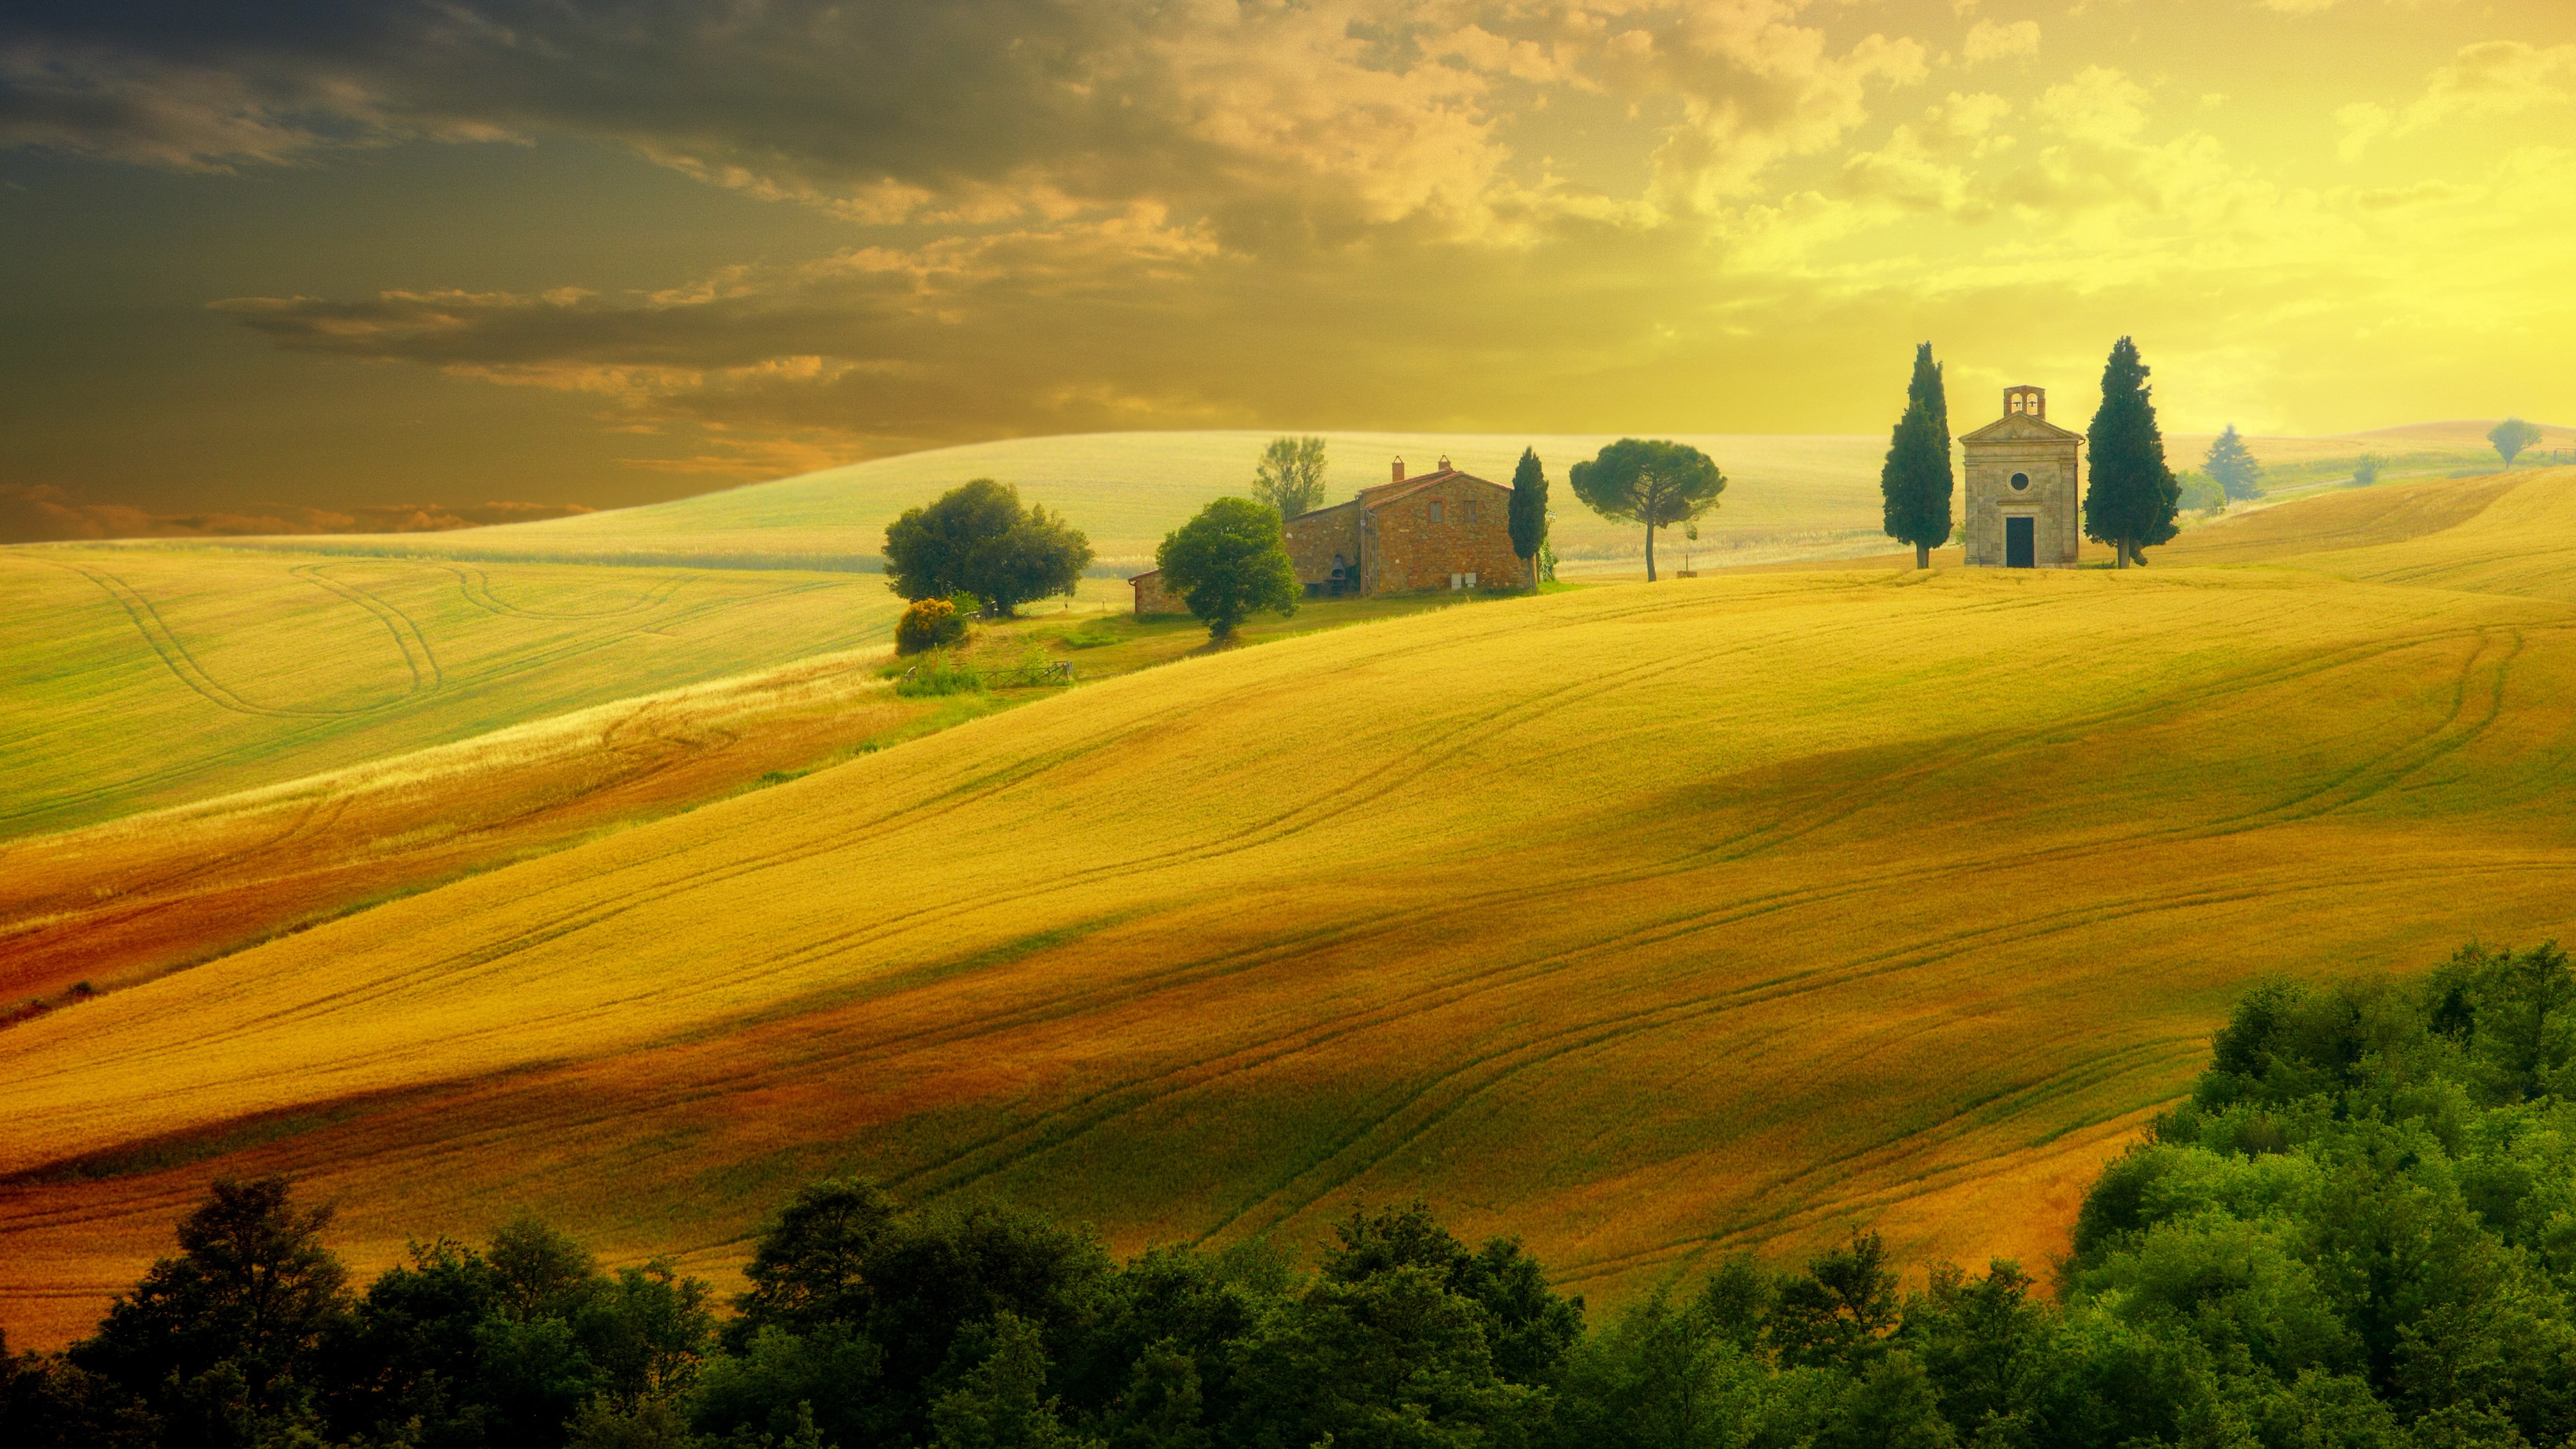 Flowers Hd Wallpapers With Quotes Wallpaper Tuscany Italy Hills Field 5k Nature 16281